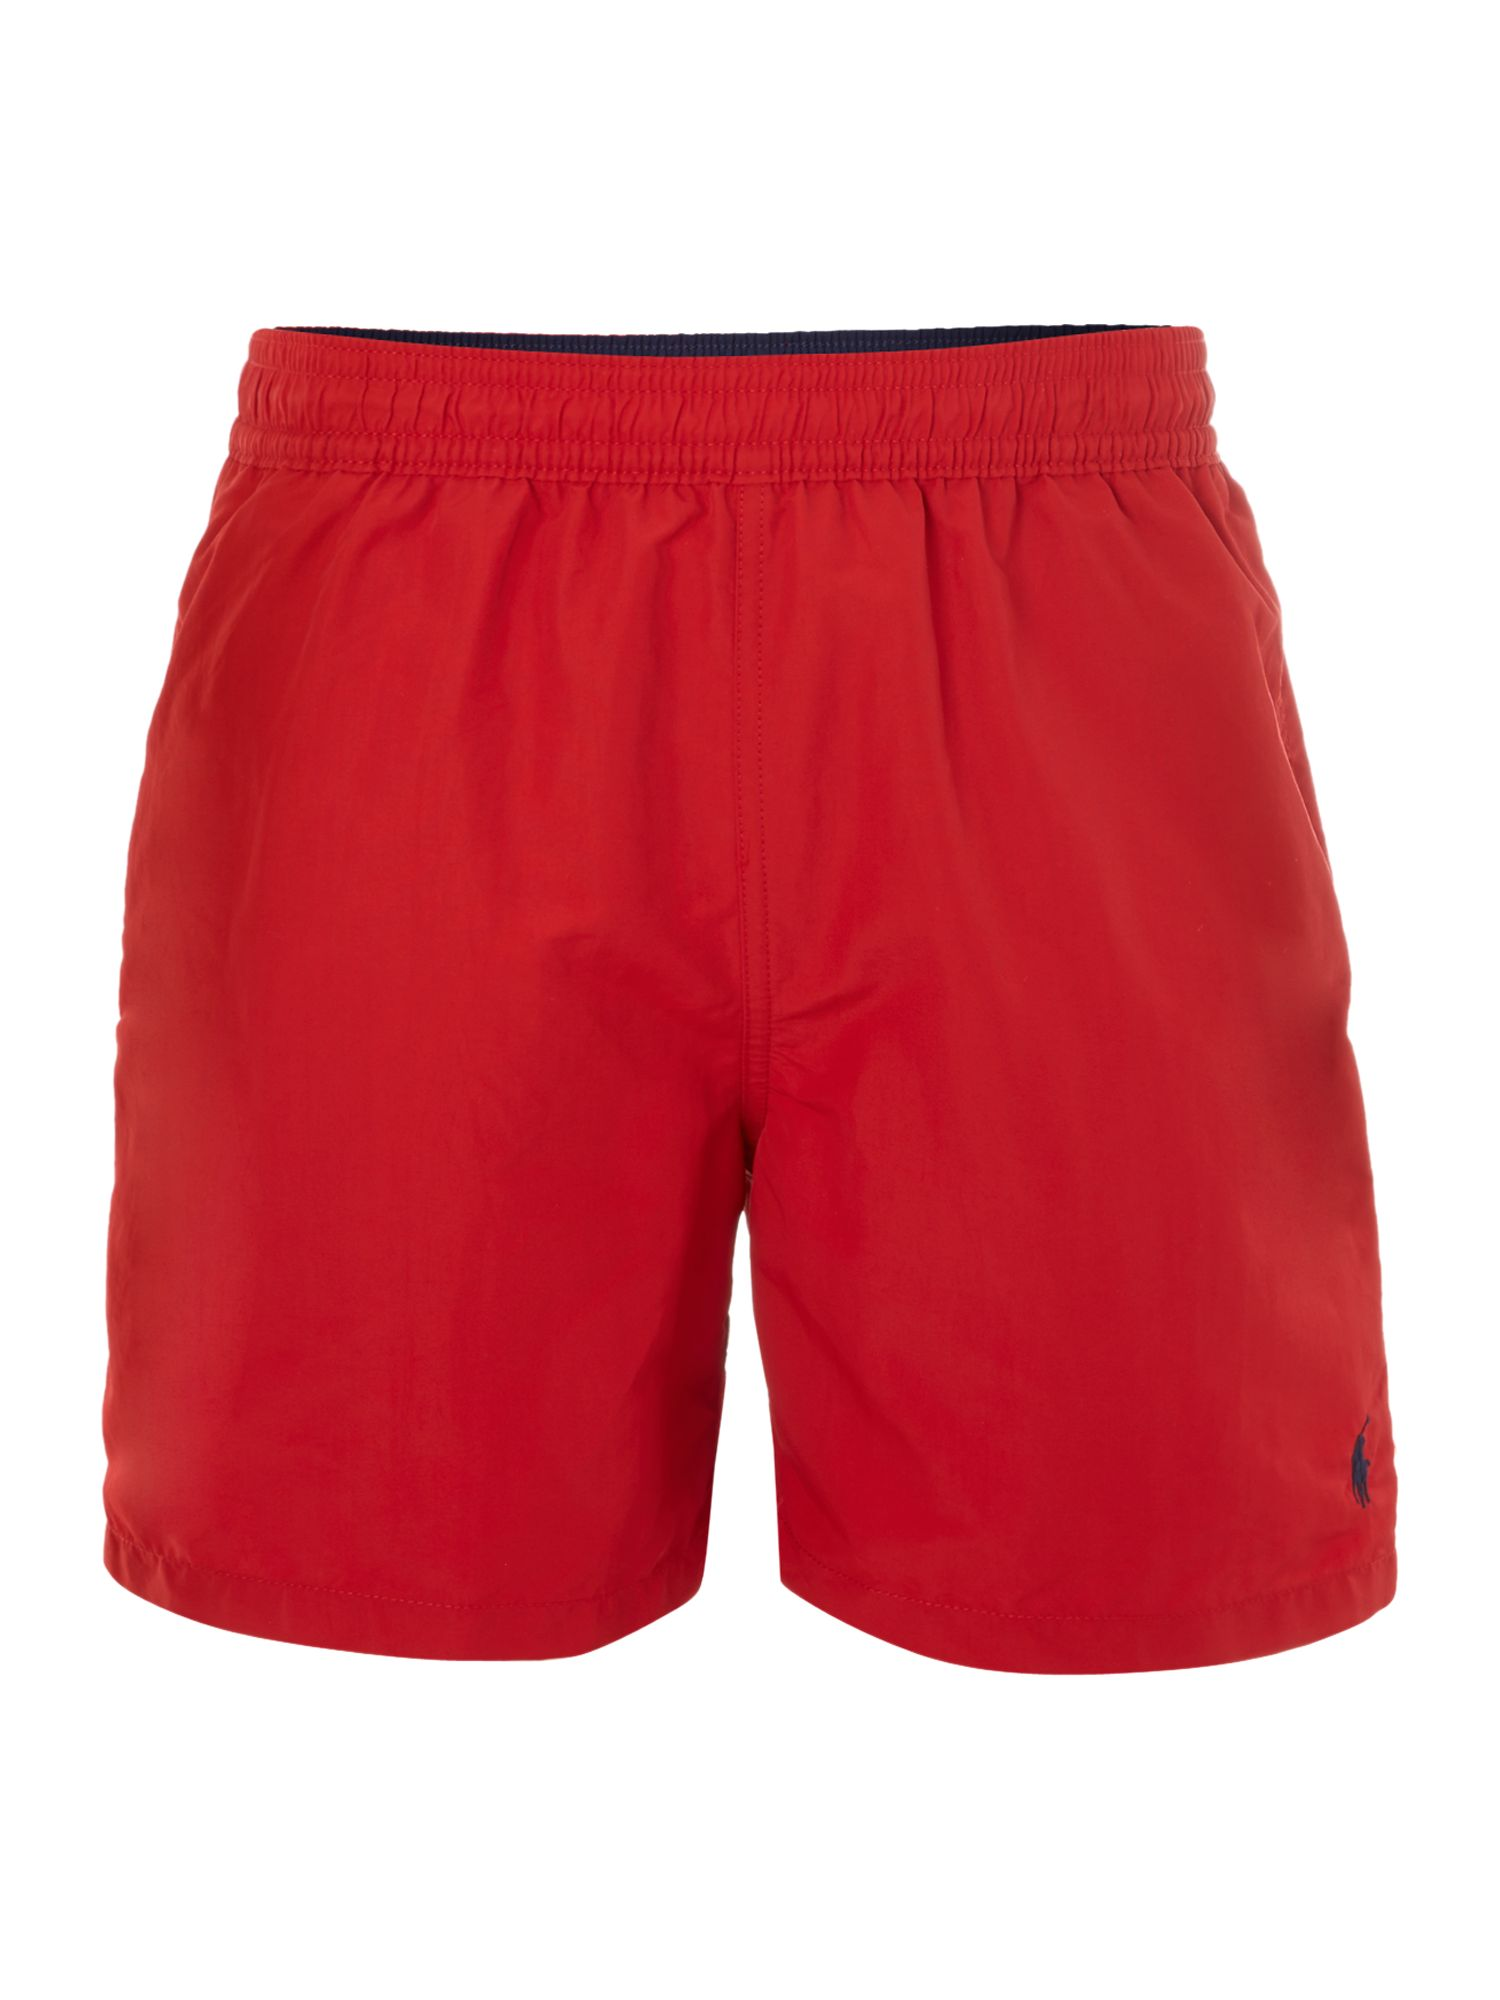 Ralph lauren shorts | Shop for cheap products and Save online